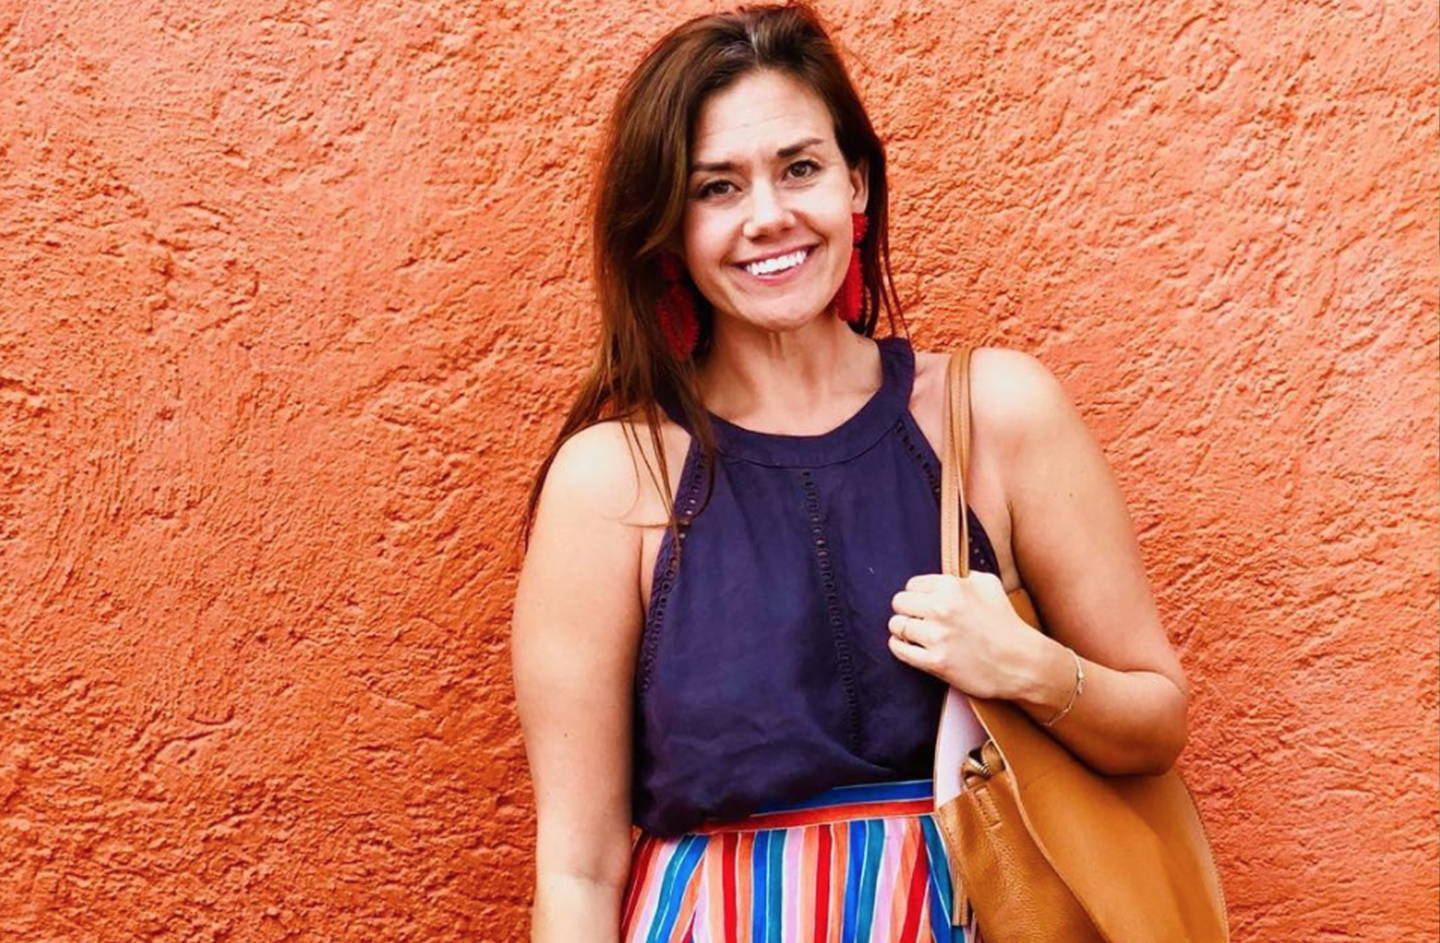 Megan Shekleton, founder of MoxxieMade, against a wall smiling and holding a purse